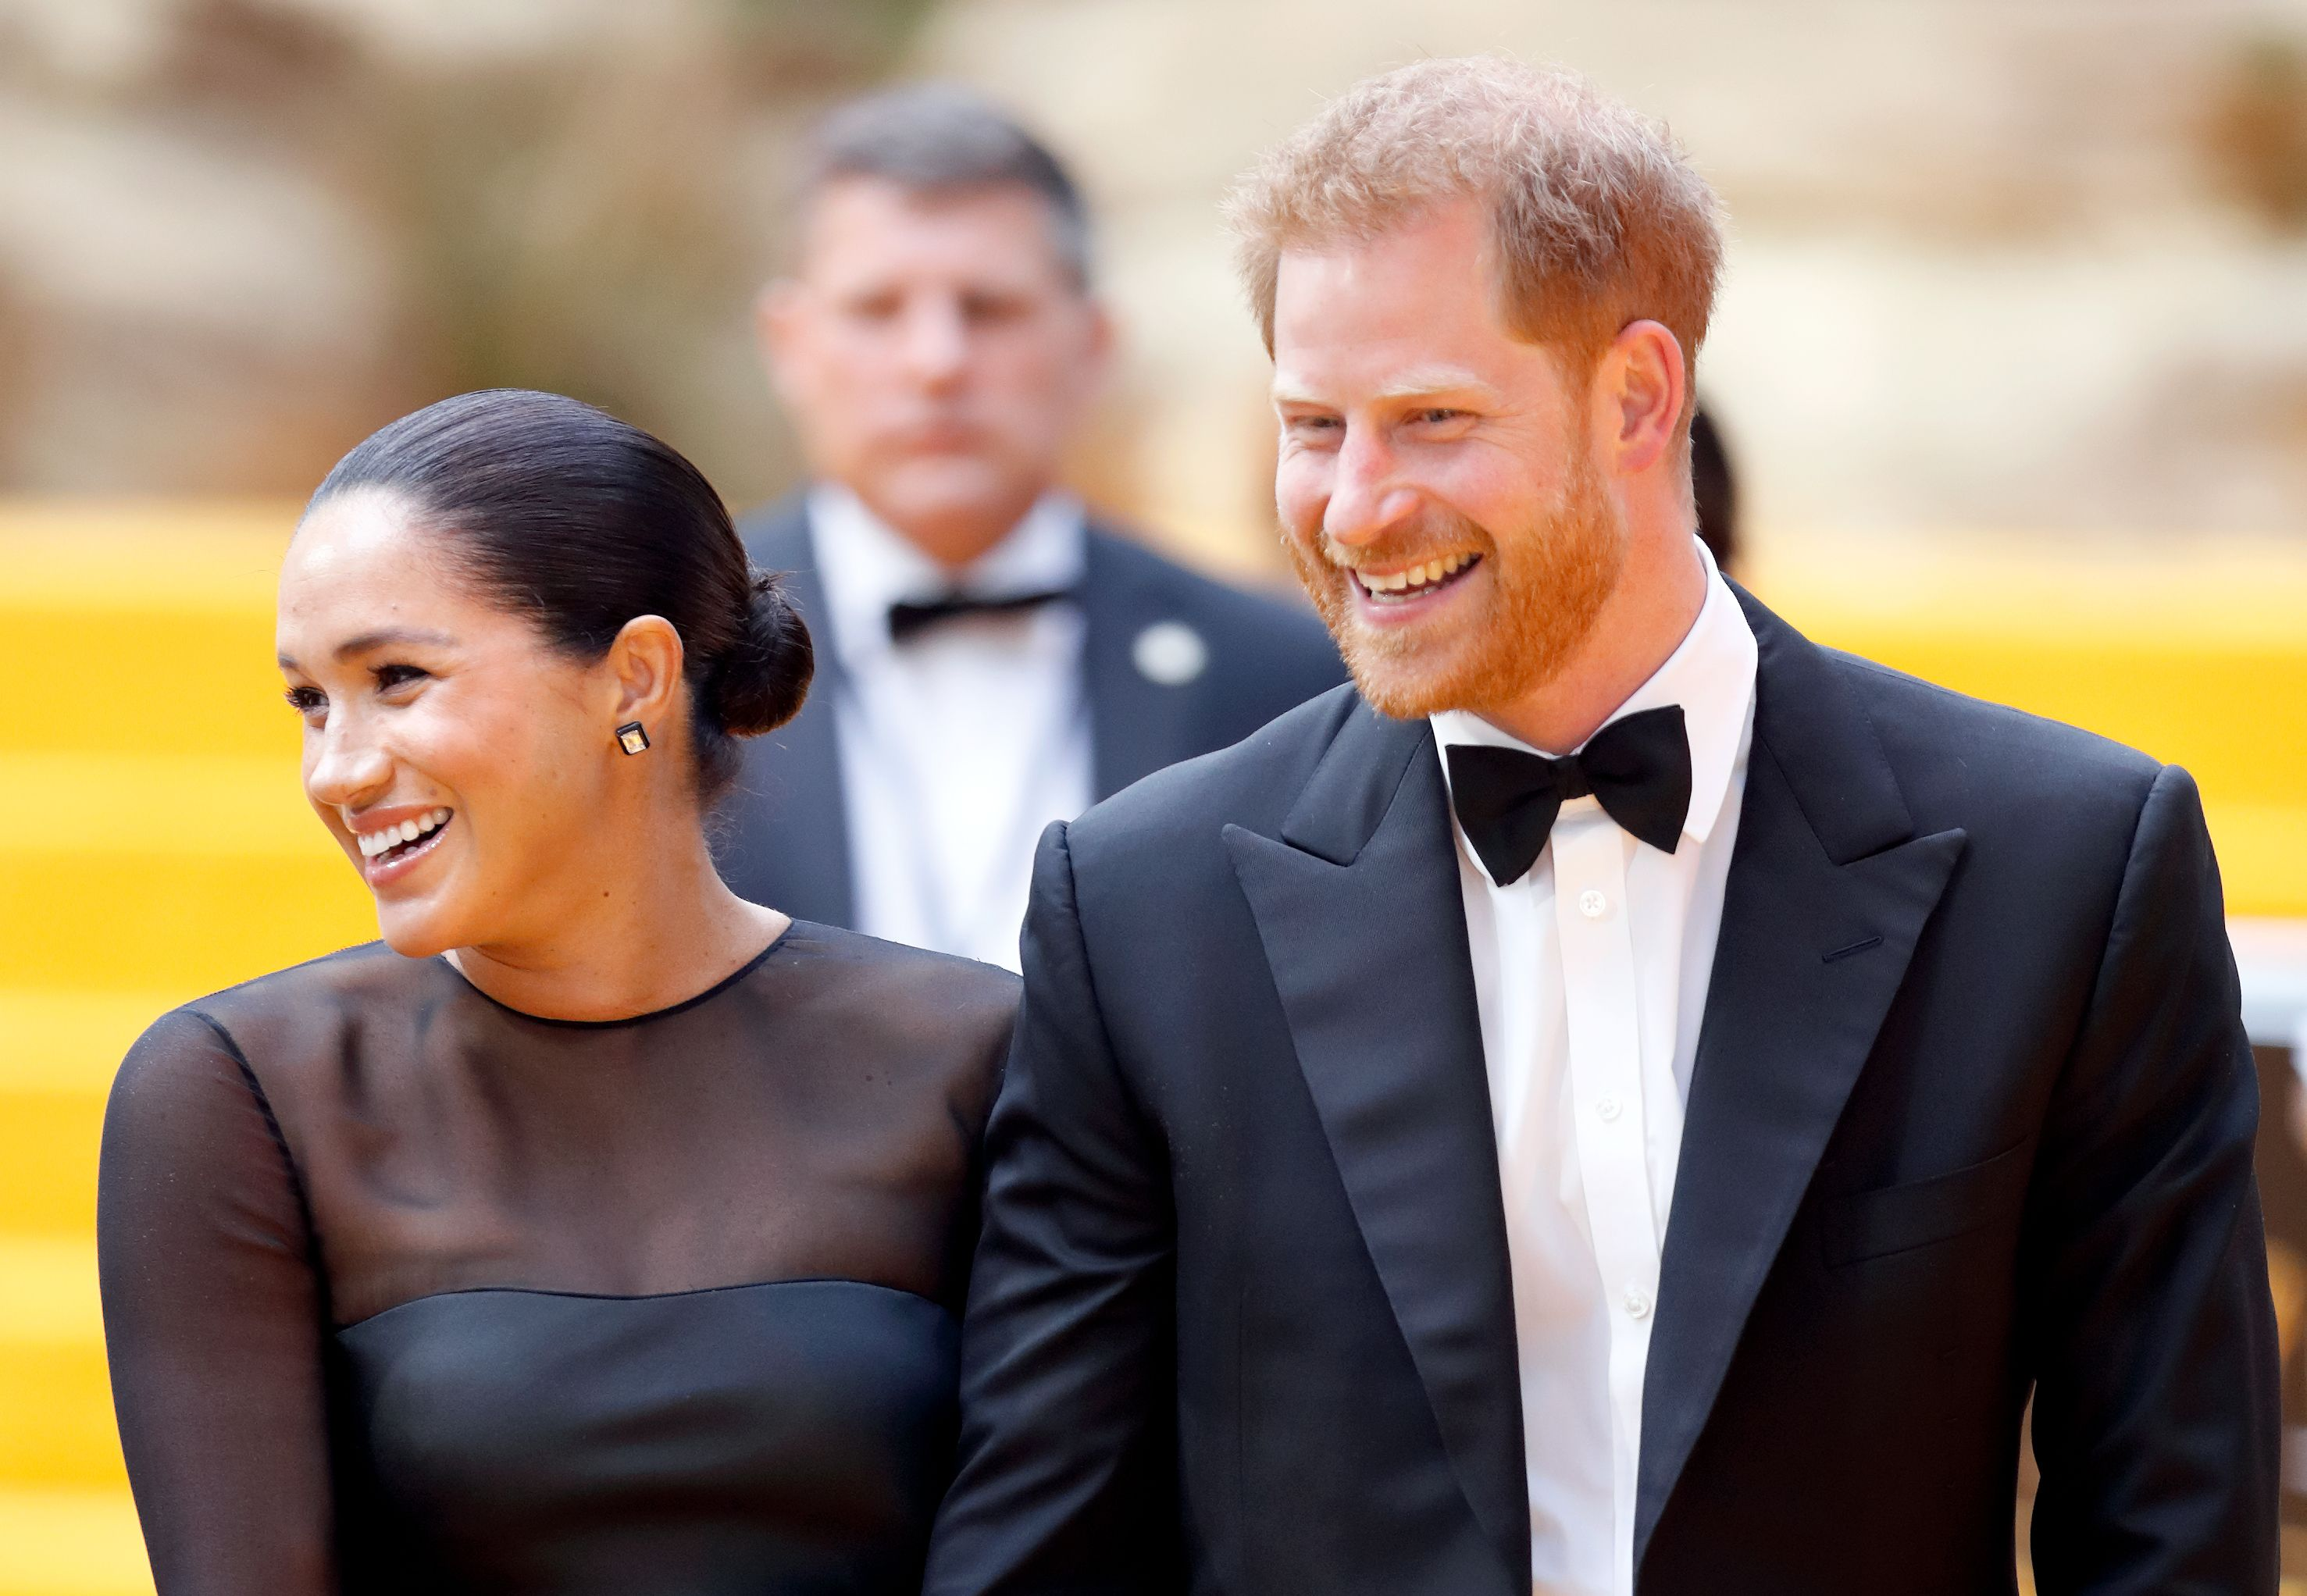 Etiquette expert criticises Prince Harry's red carpet style